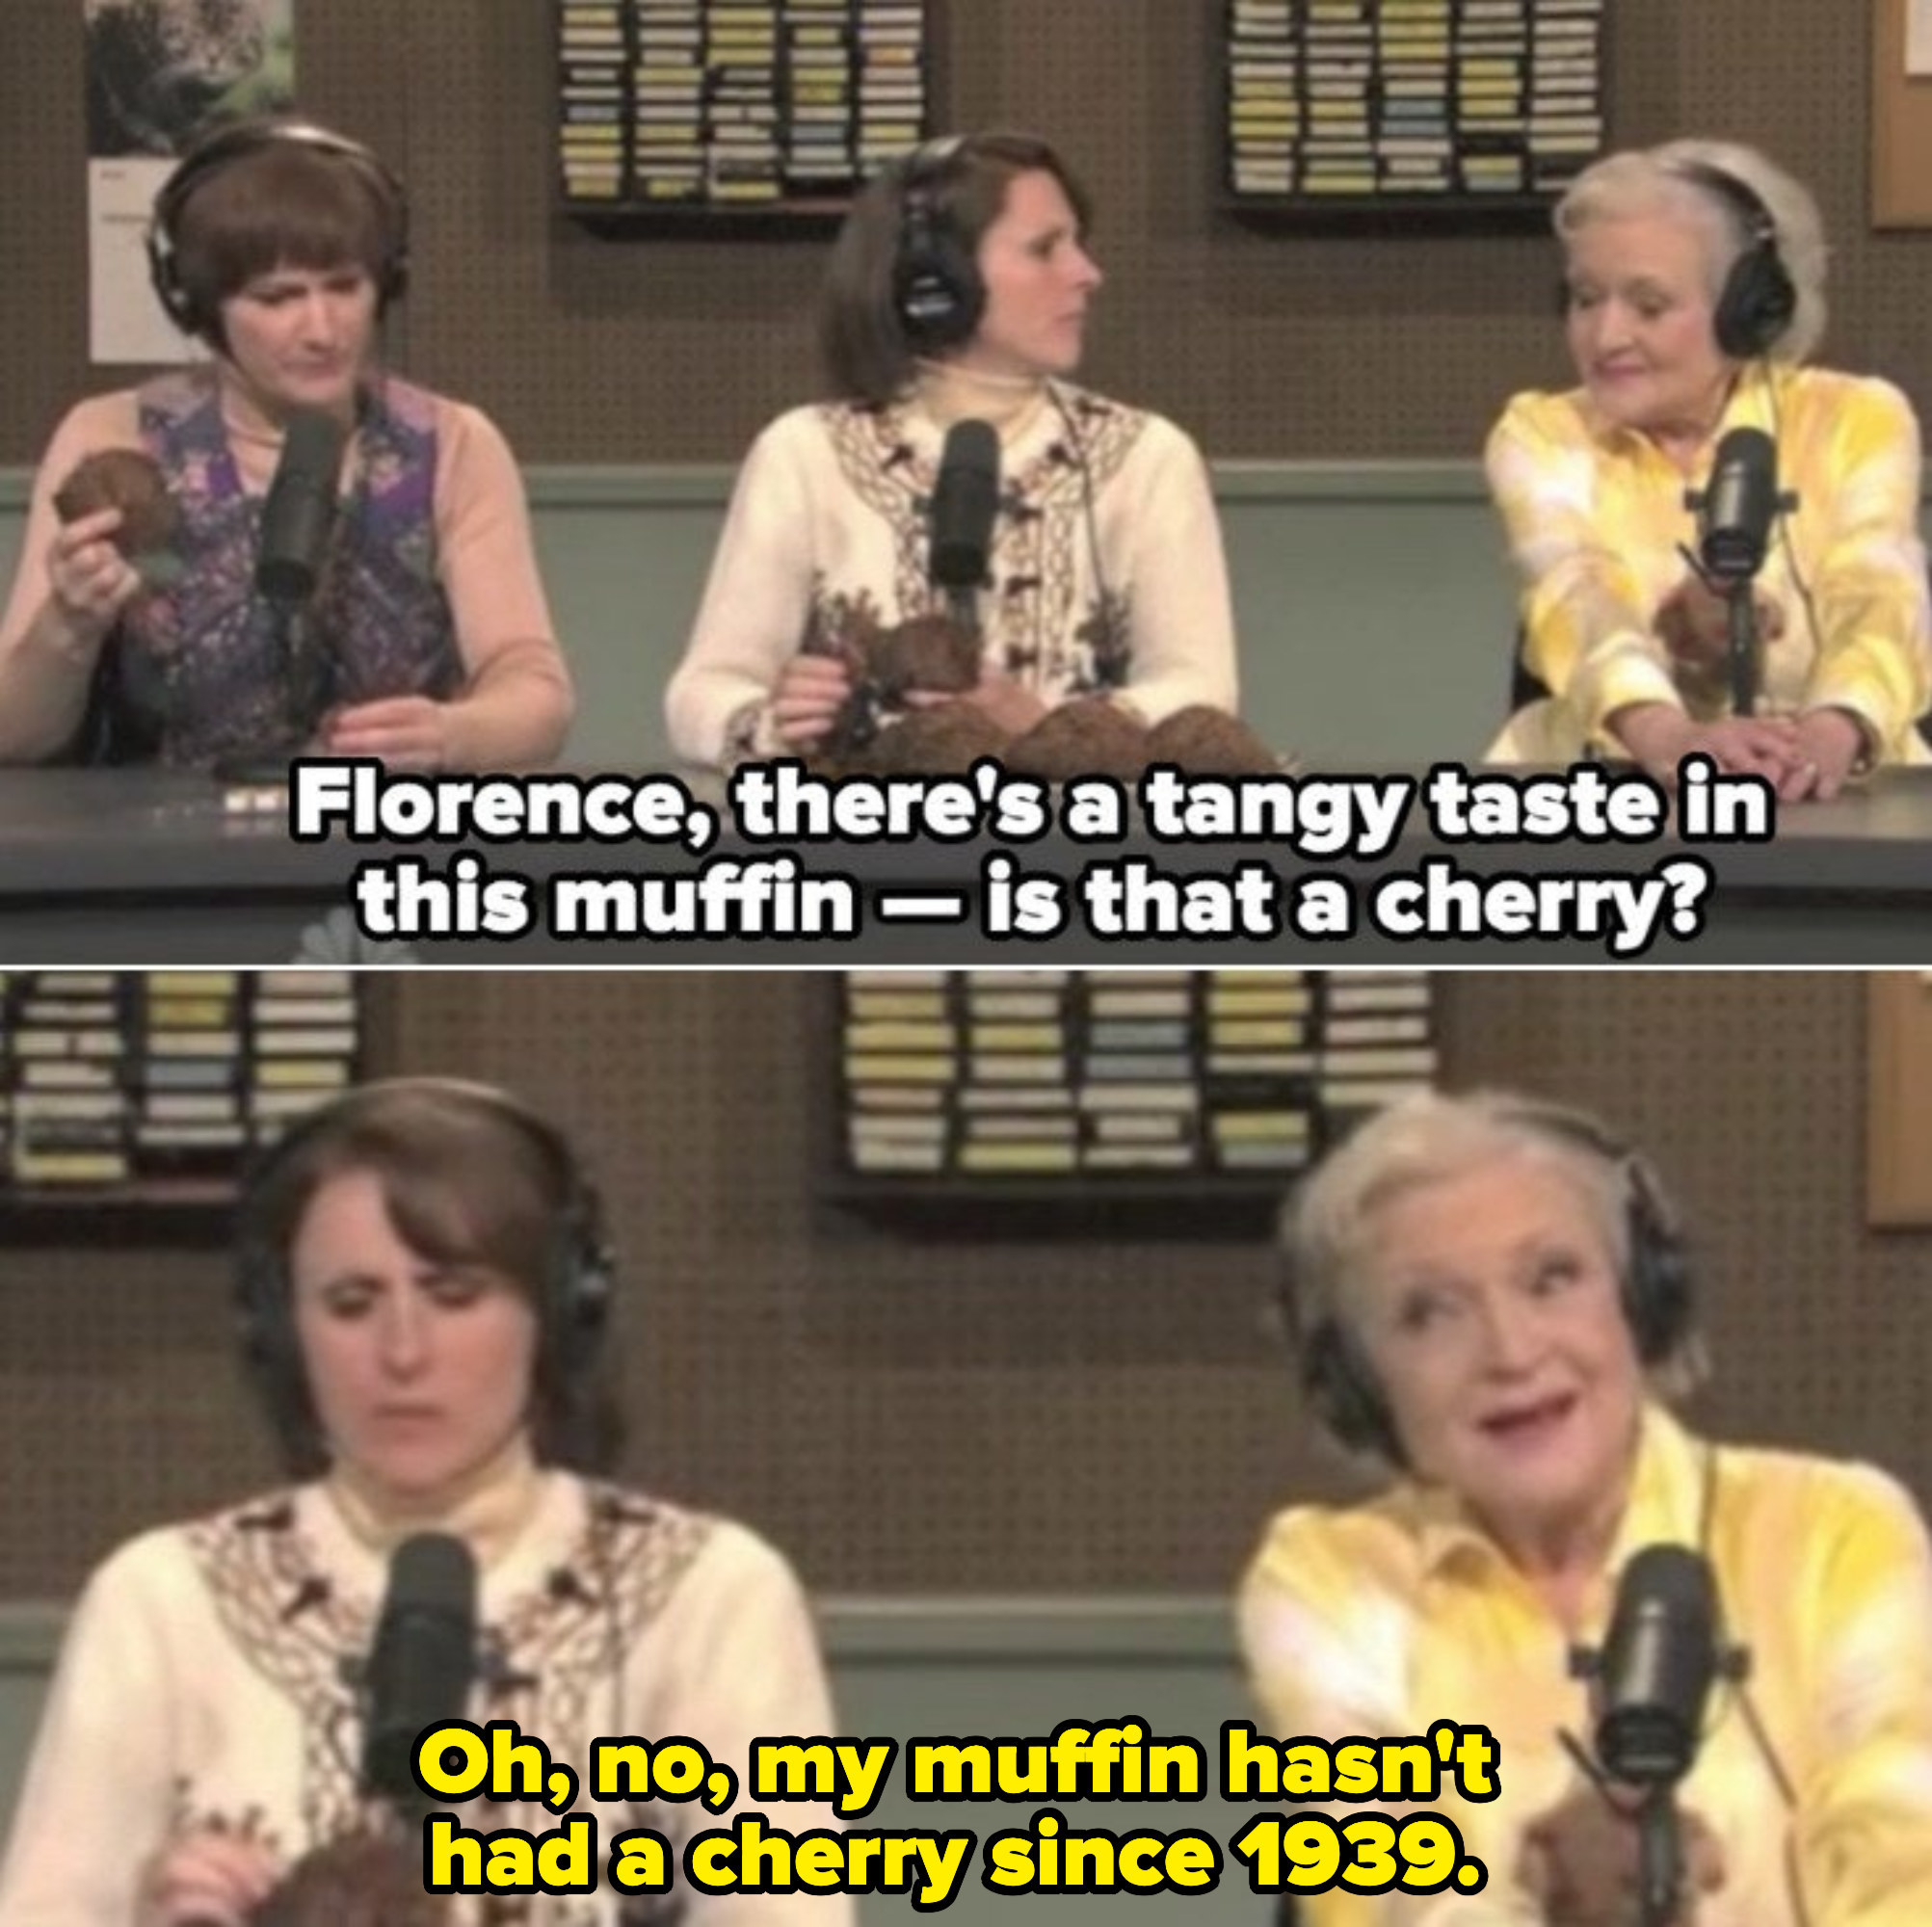 """Betty White playing Florence on an NPR radio show, """"Delicious Dish,"""" promoting her muffins. With gusto and attitude, she jokes: """"My muffin hasn't had a cherry since 1939"""""""